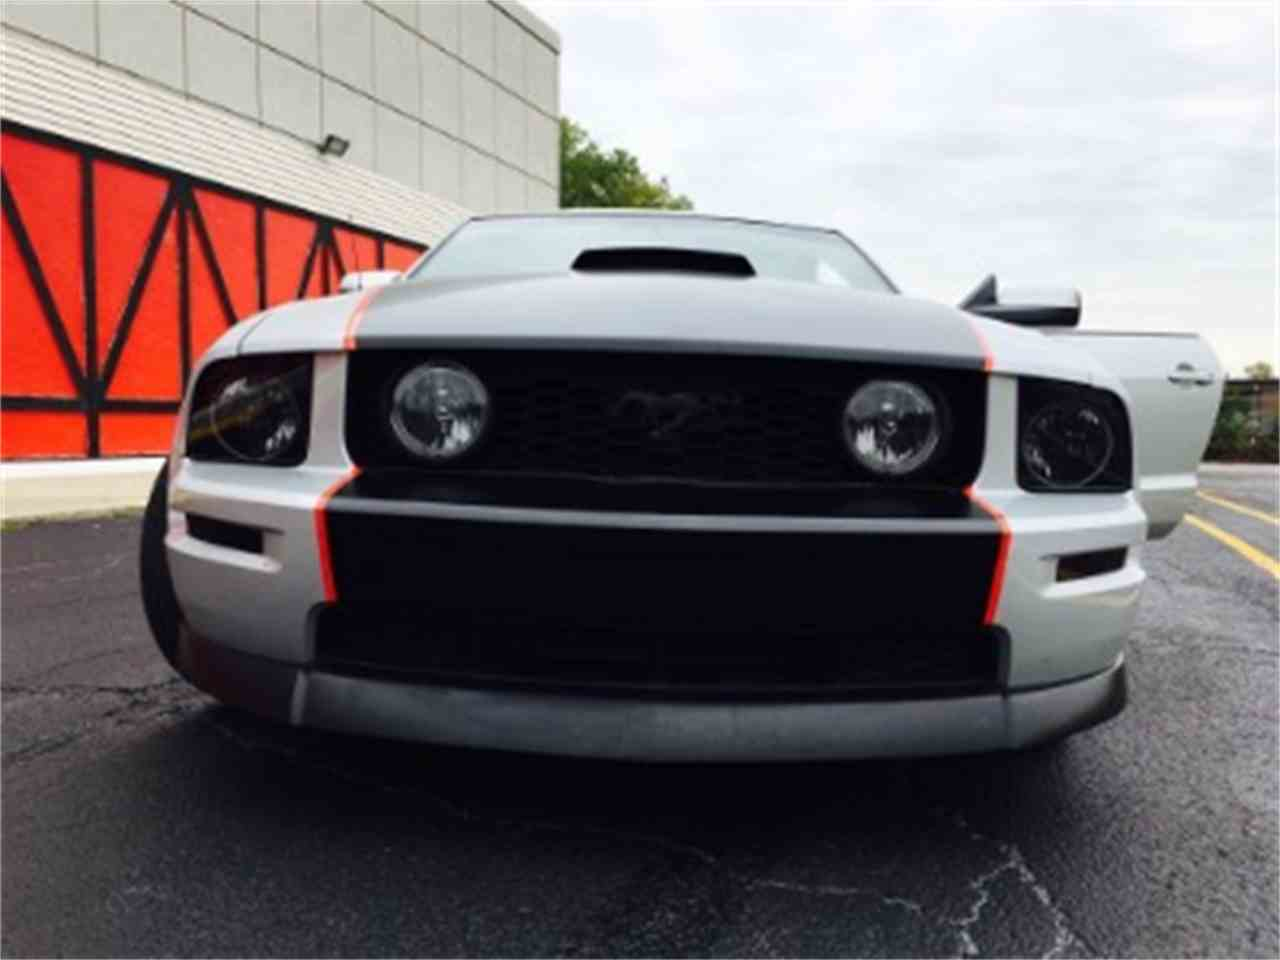 Large Picture of 2006 Ford Mustang located in Illinois - $16,500.00 - LTC8